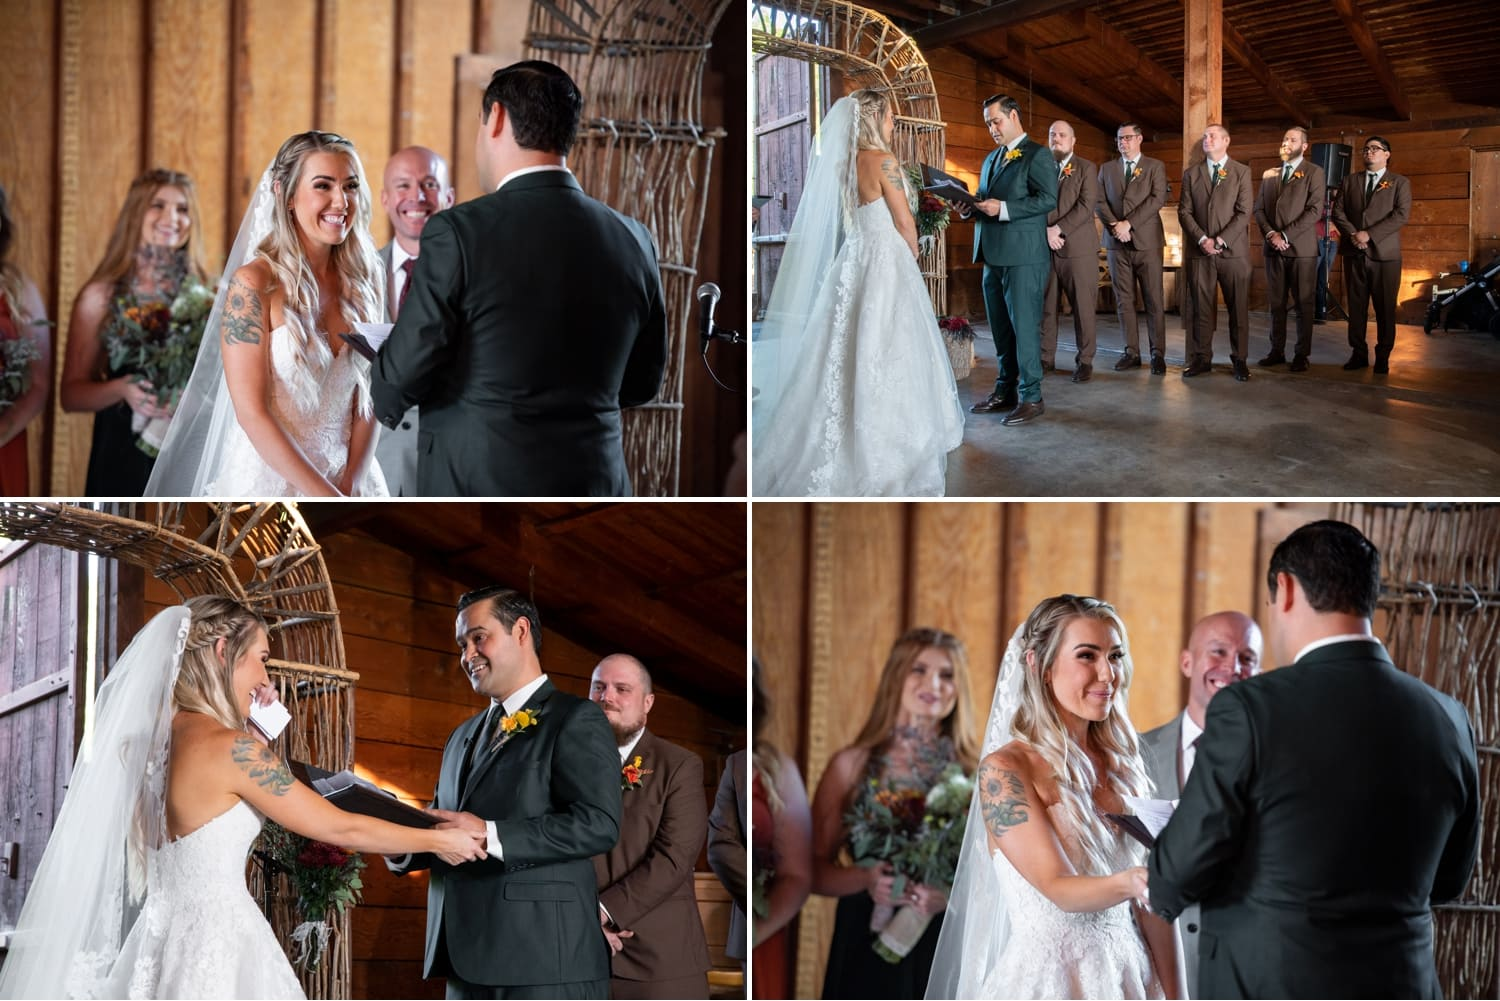 Bride and groom exchanging vows in a barn wedding ceremony at Ethereal Gardens.